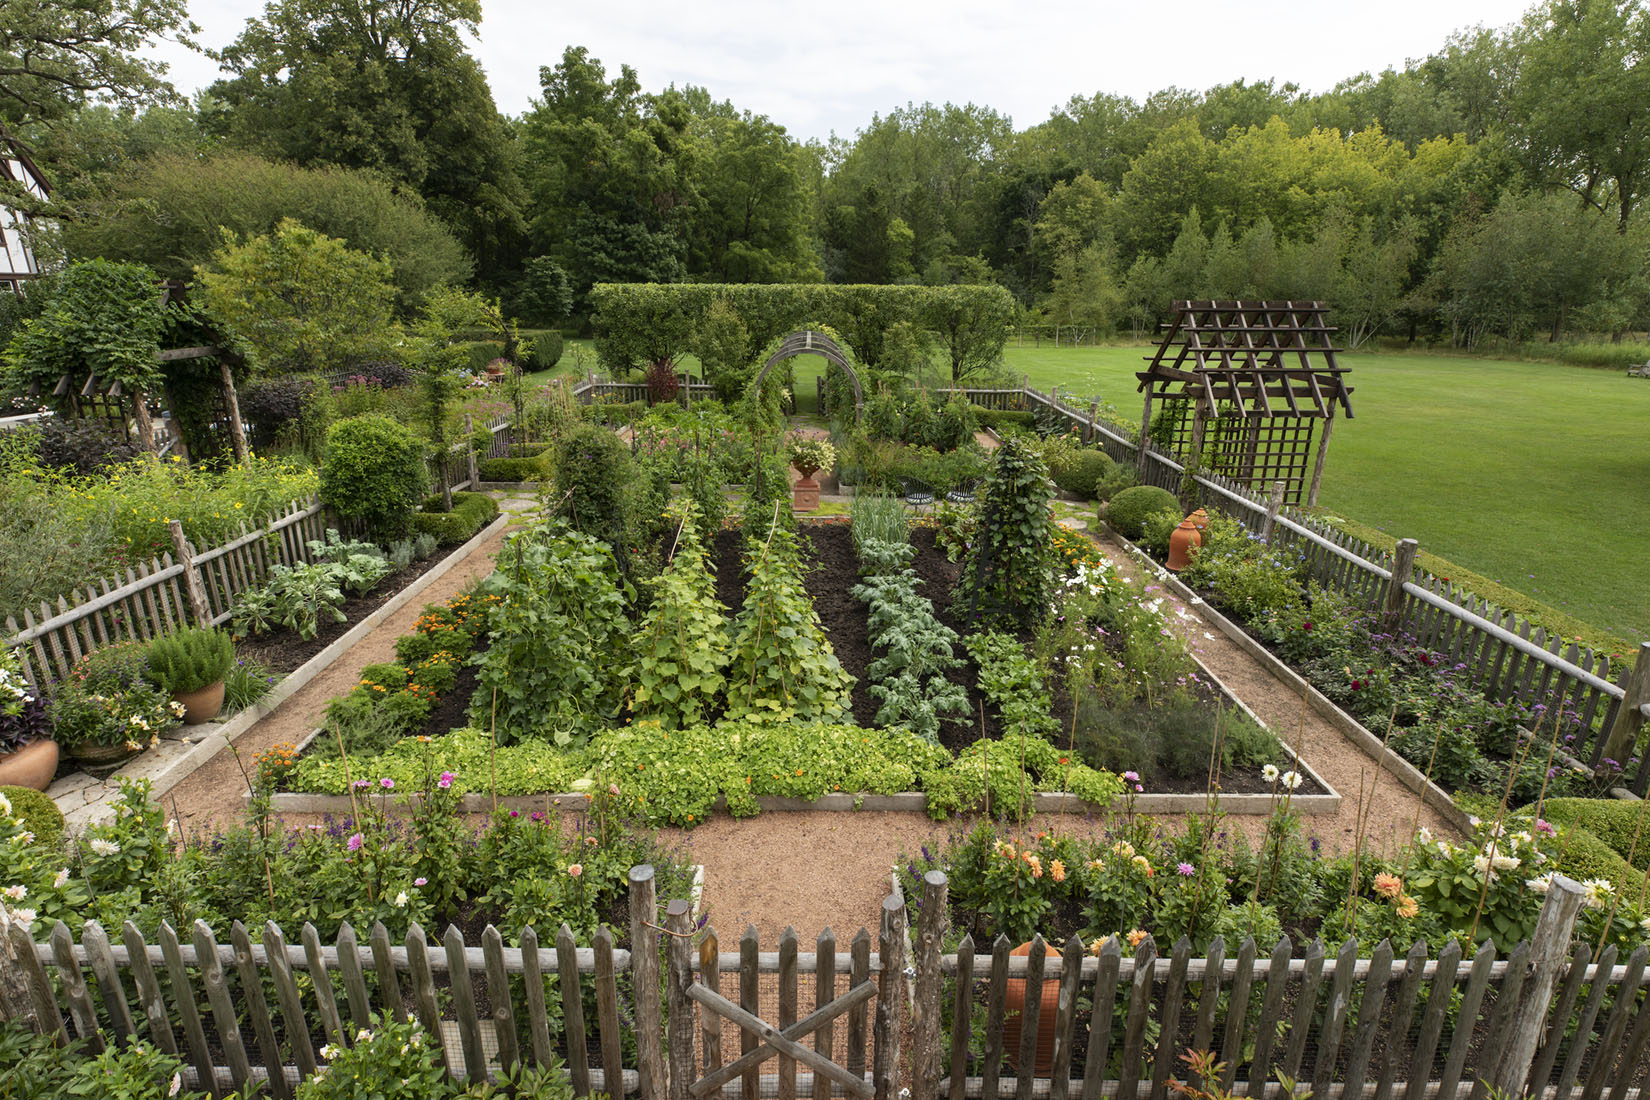 """Caption from the book Gardens of the North Shore of Chicago: """"Squash, beans, tomatoes, and herbs mix with nasturtiums, cosmos, and dahlias in the vegetable garden."""" (Old Mill Farm in Lake Forest)"""